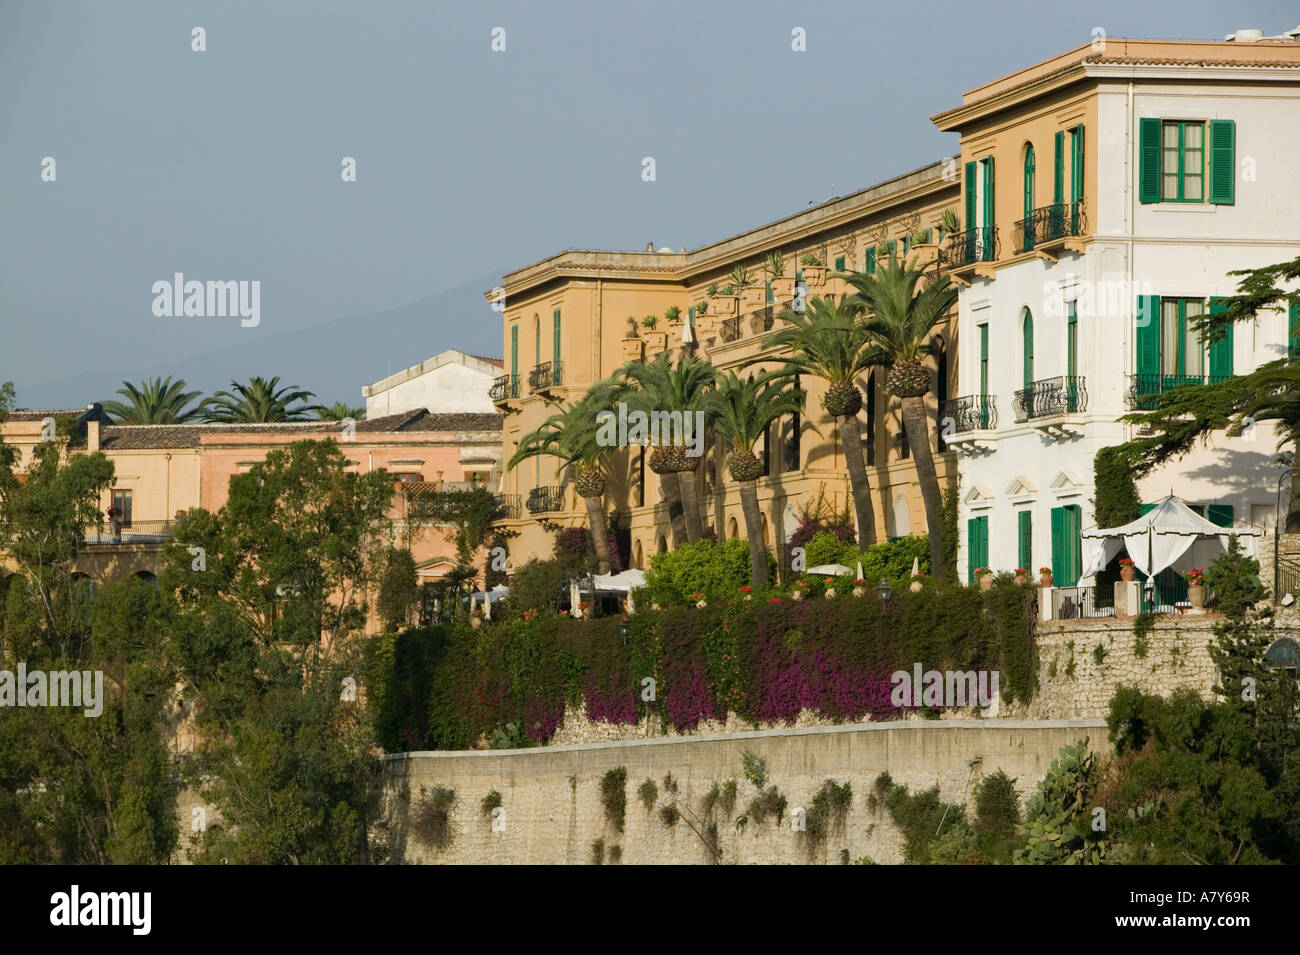 ITALY Sicily TAORMINA San Domenico Palace Hotel Oldest Most Famous Monastery In Italy Exterior View